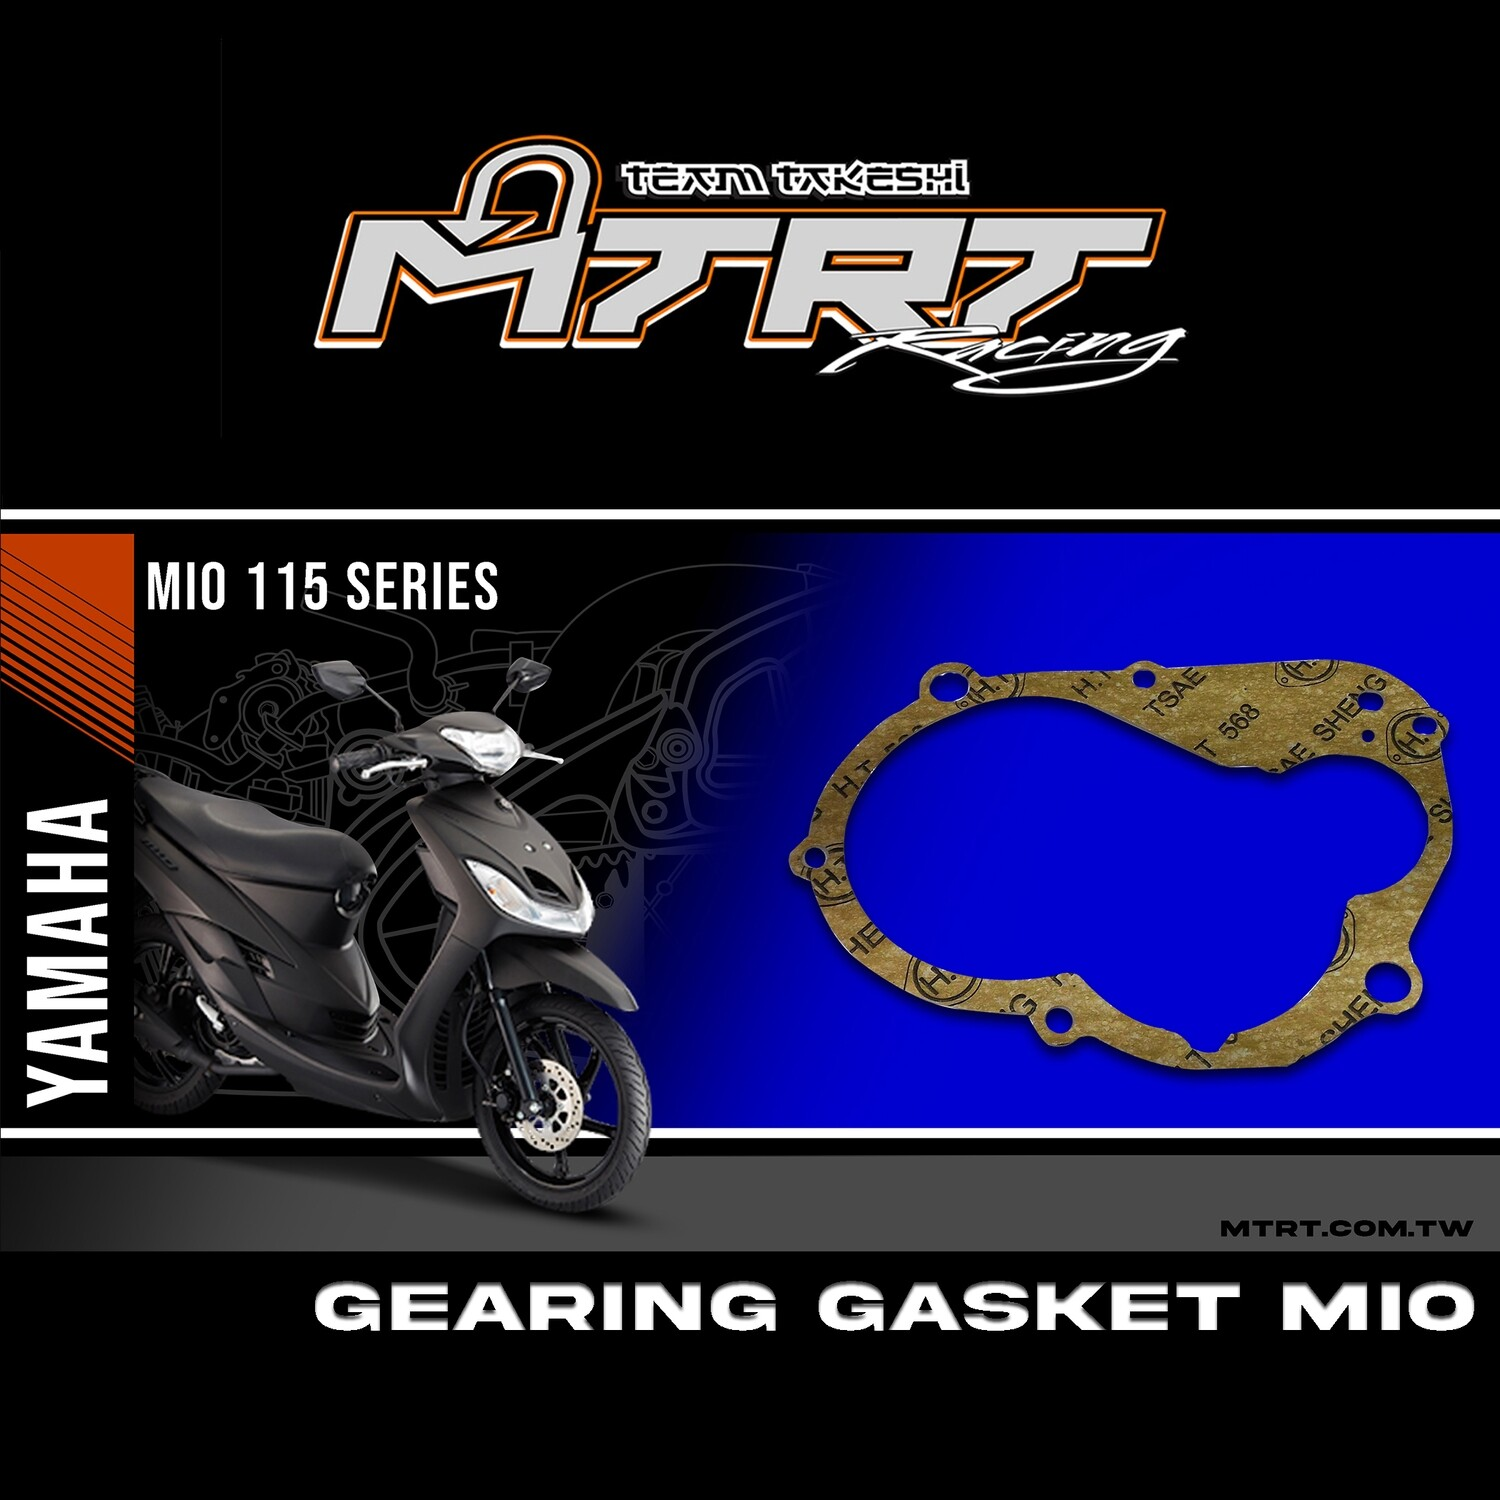 GEARING GASKET MIO SEE C'A Main